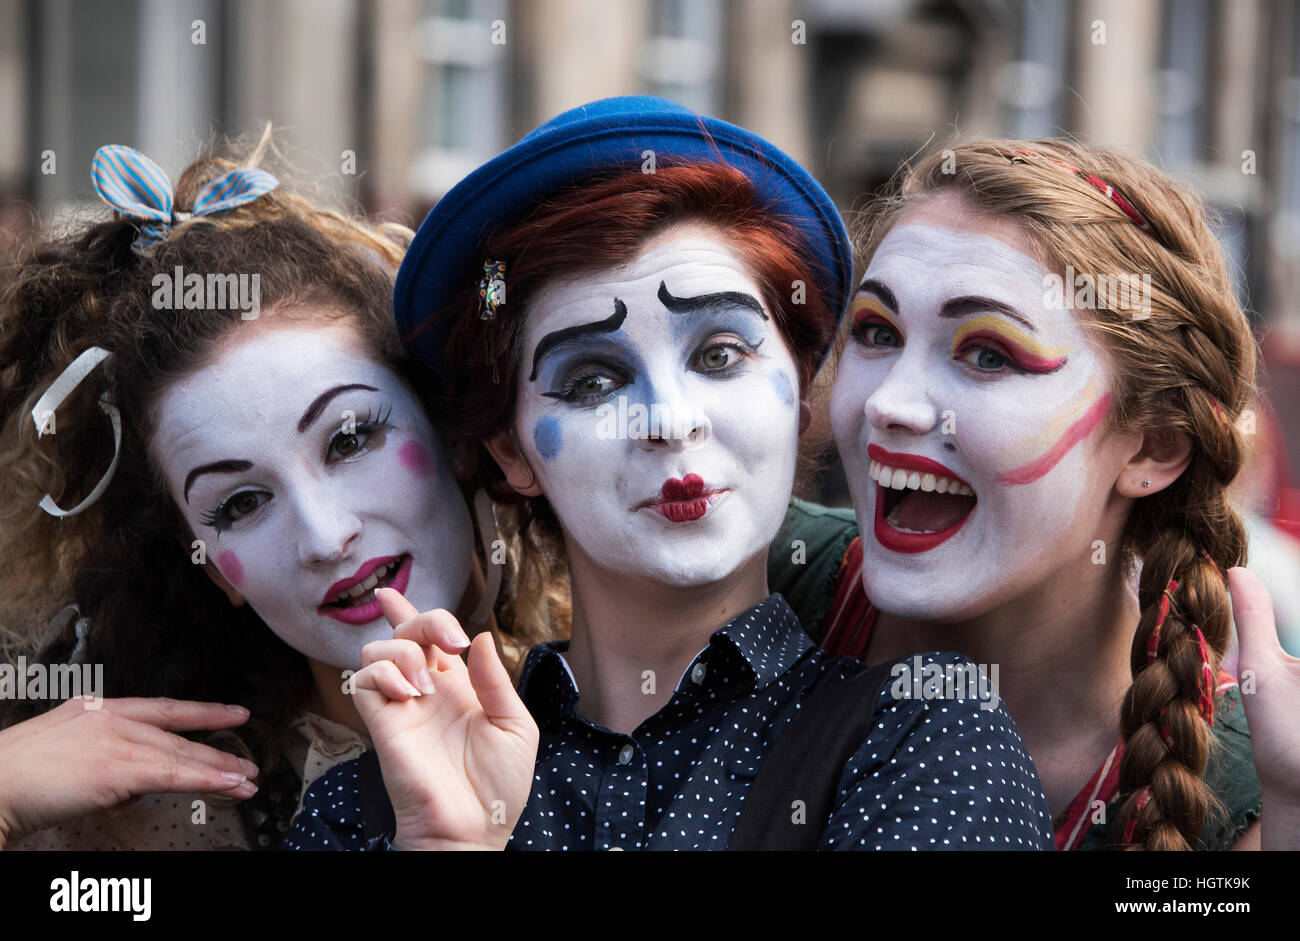 Edinburgh's Fringe Festival performers on the Royal Mile promoting their show. - Stock Image